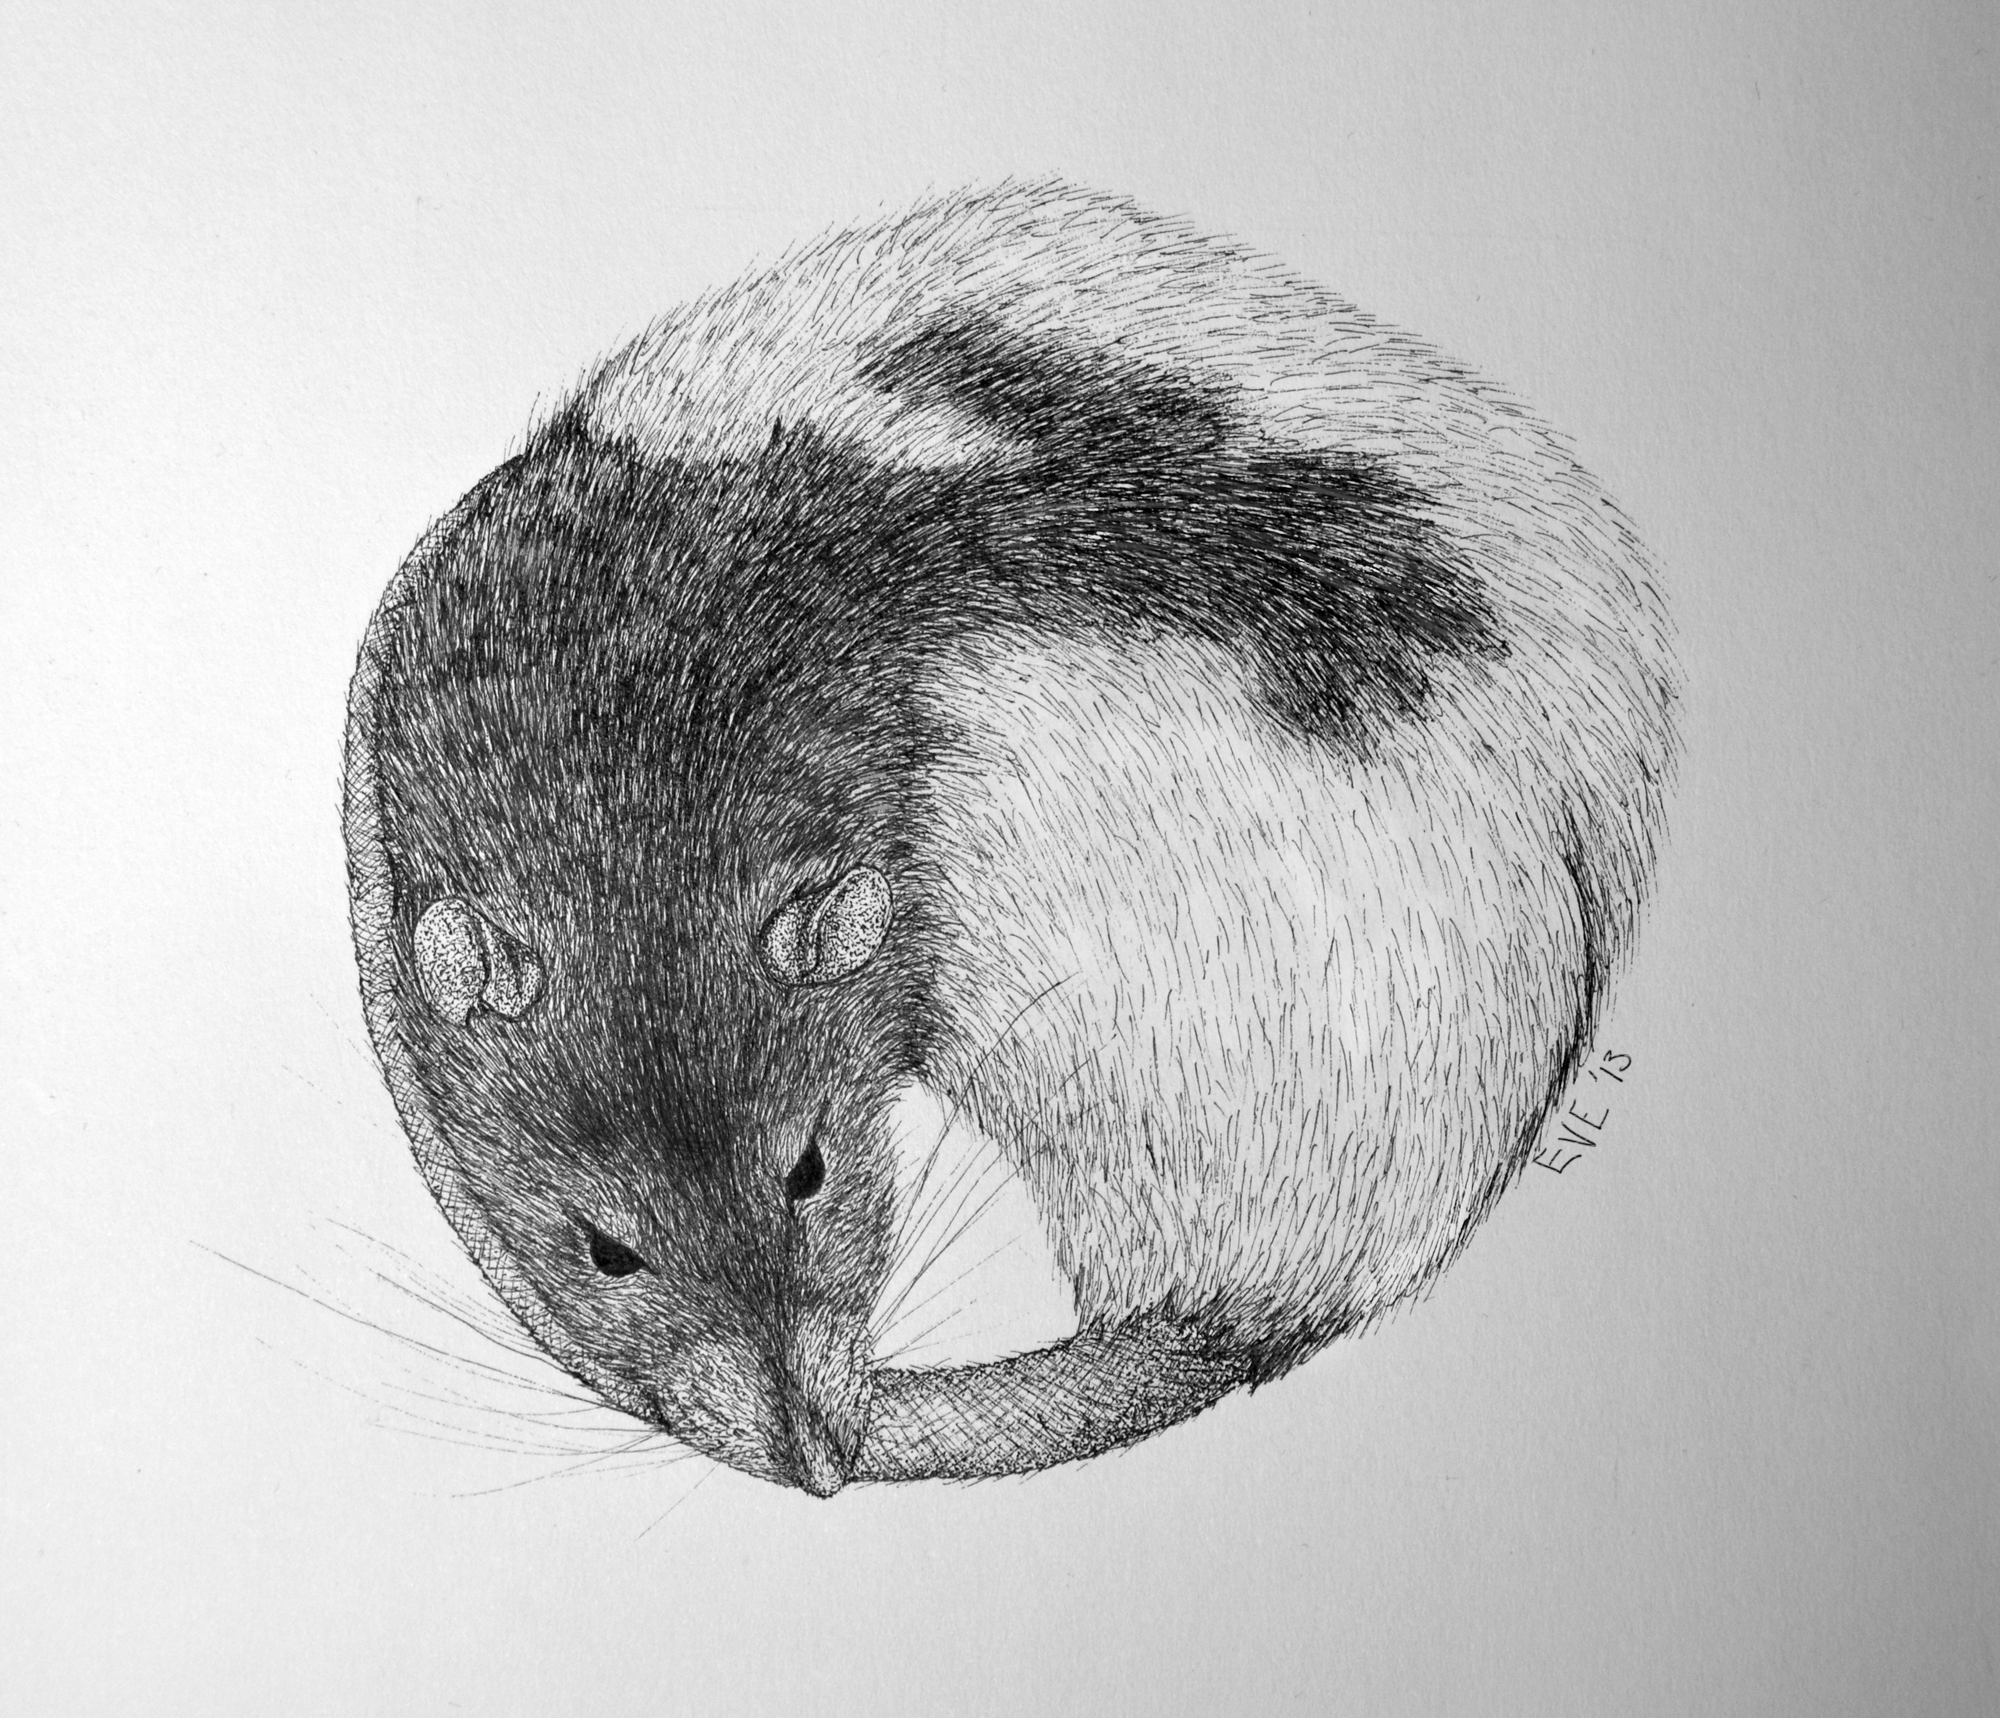 Sleepy Rattie by nEVEr-mor